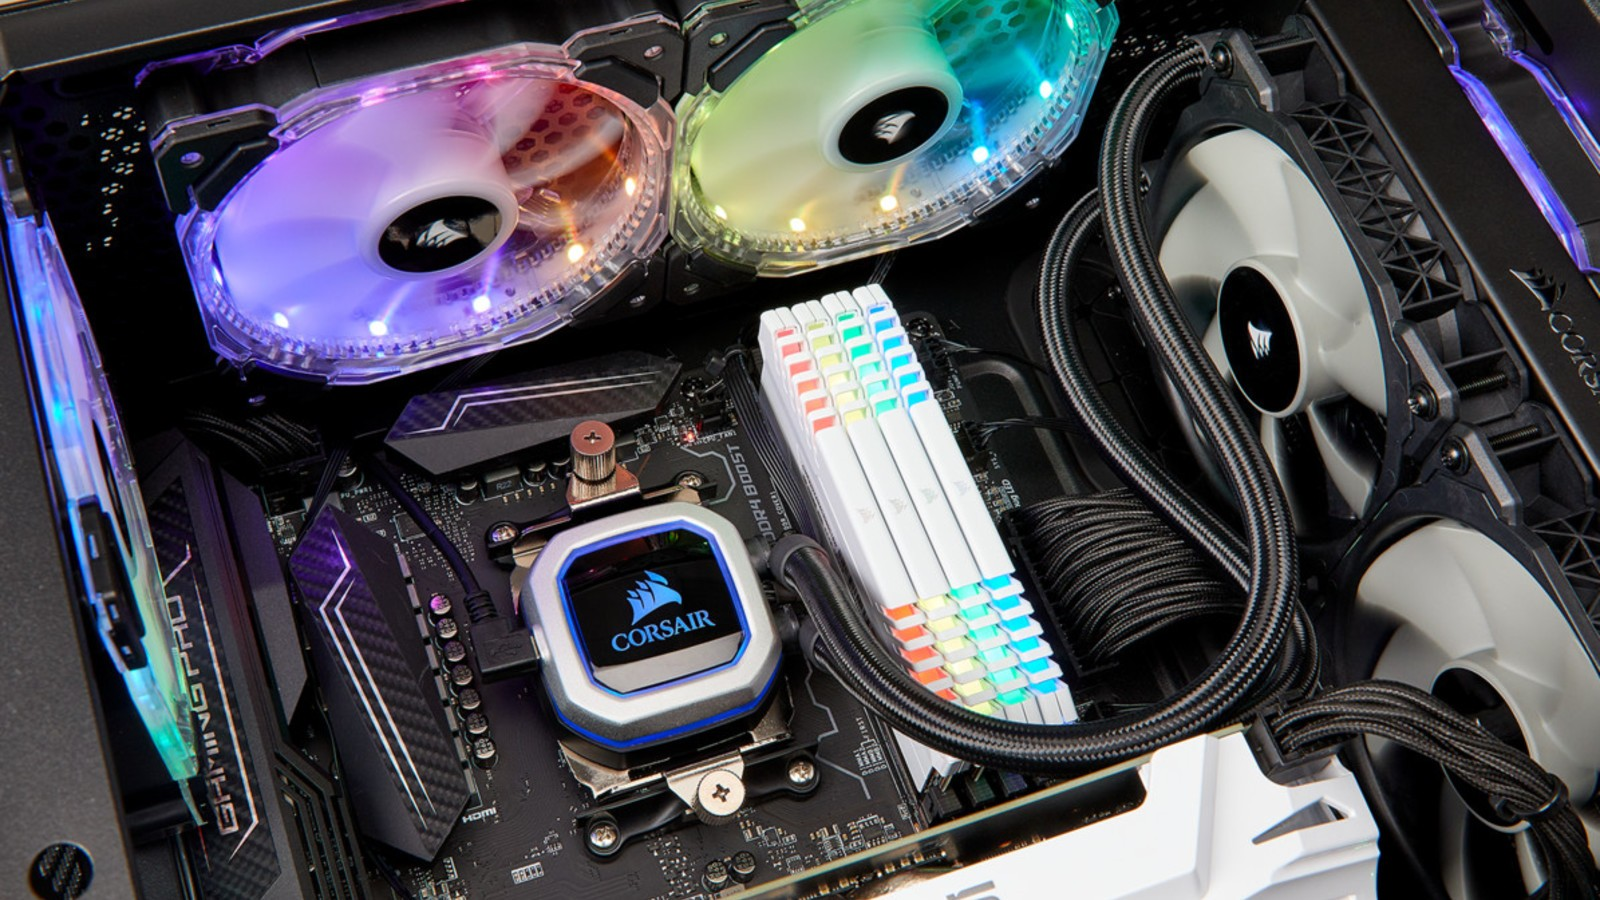 Hardware Tips to Make a PC Better on a Budget